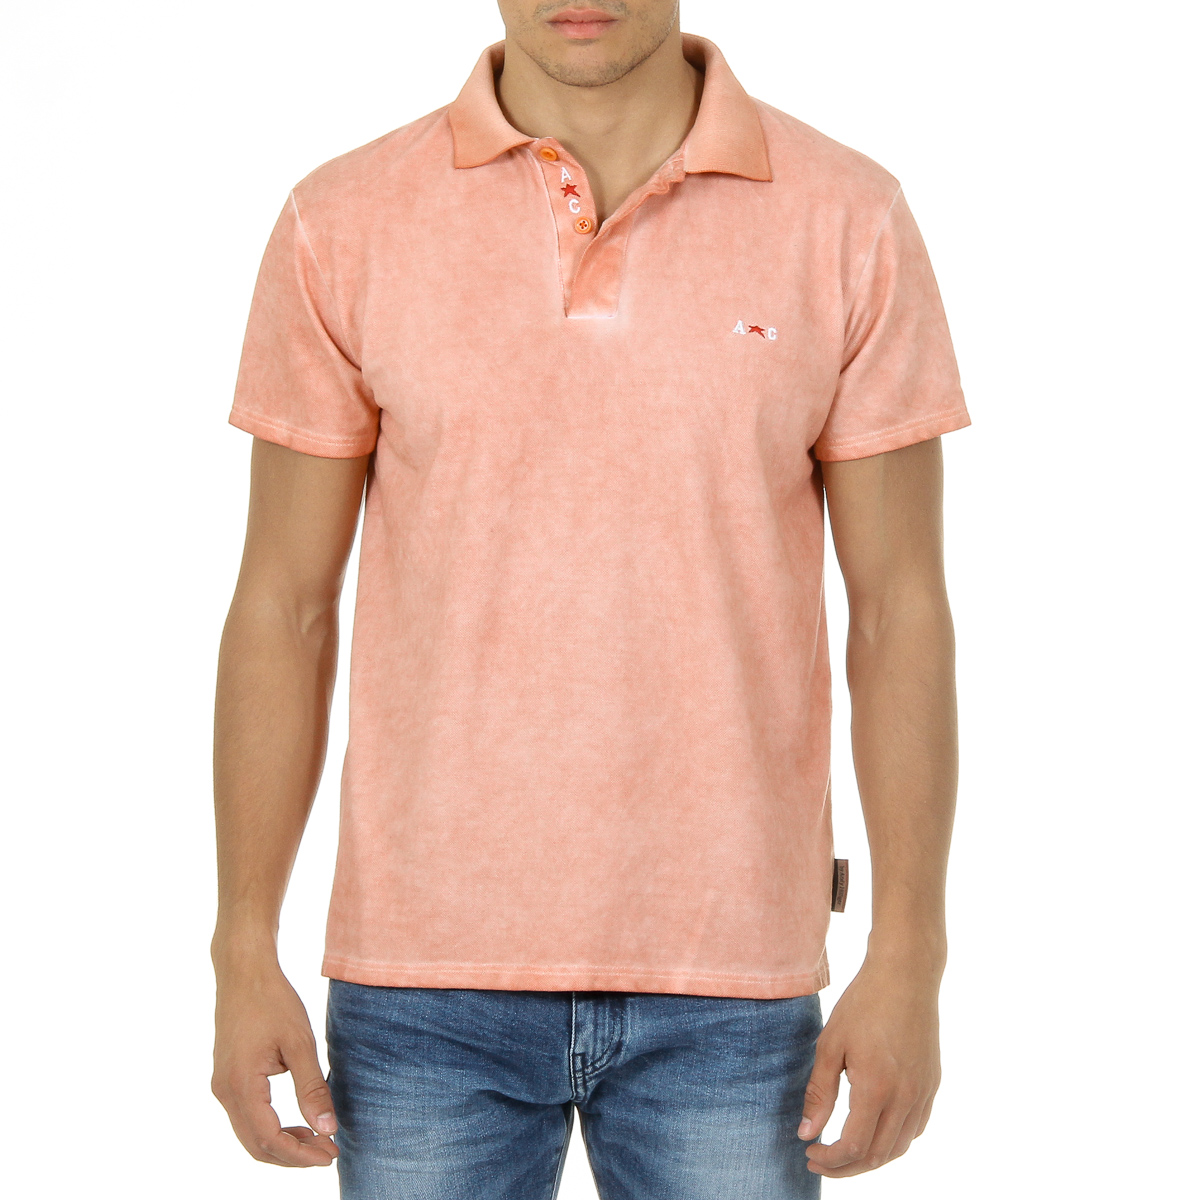 Primary image for Andrew Charles Mens Polo Short Sleeves Orange SIMBA